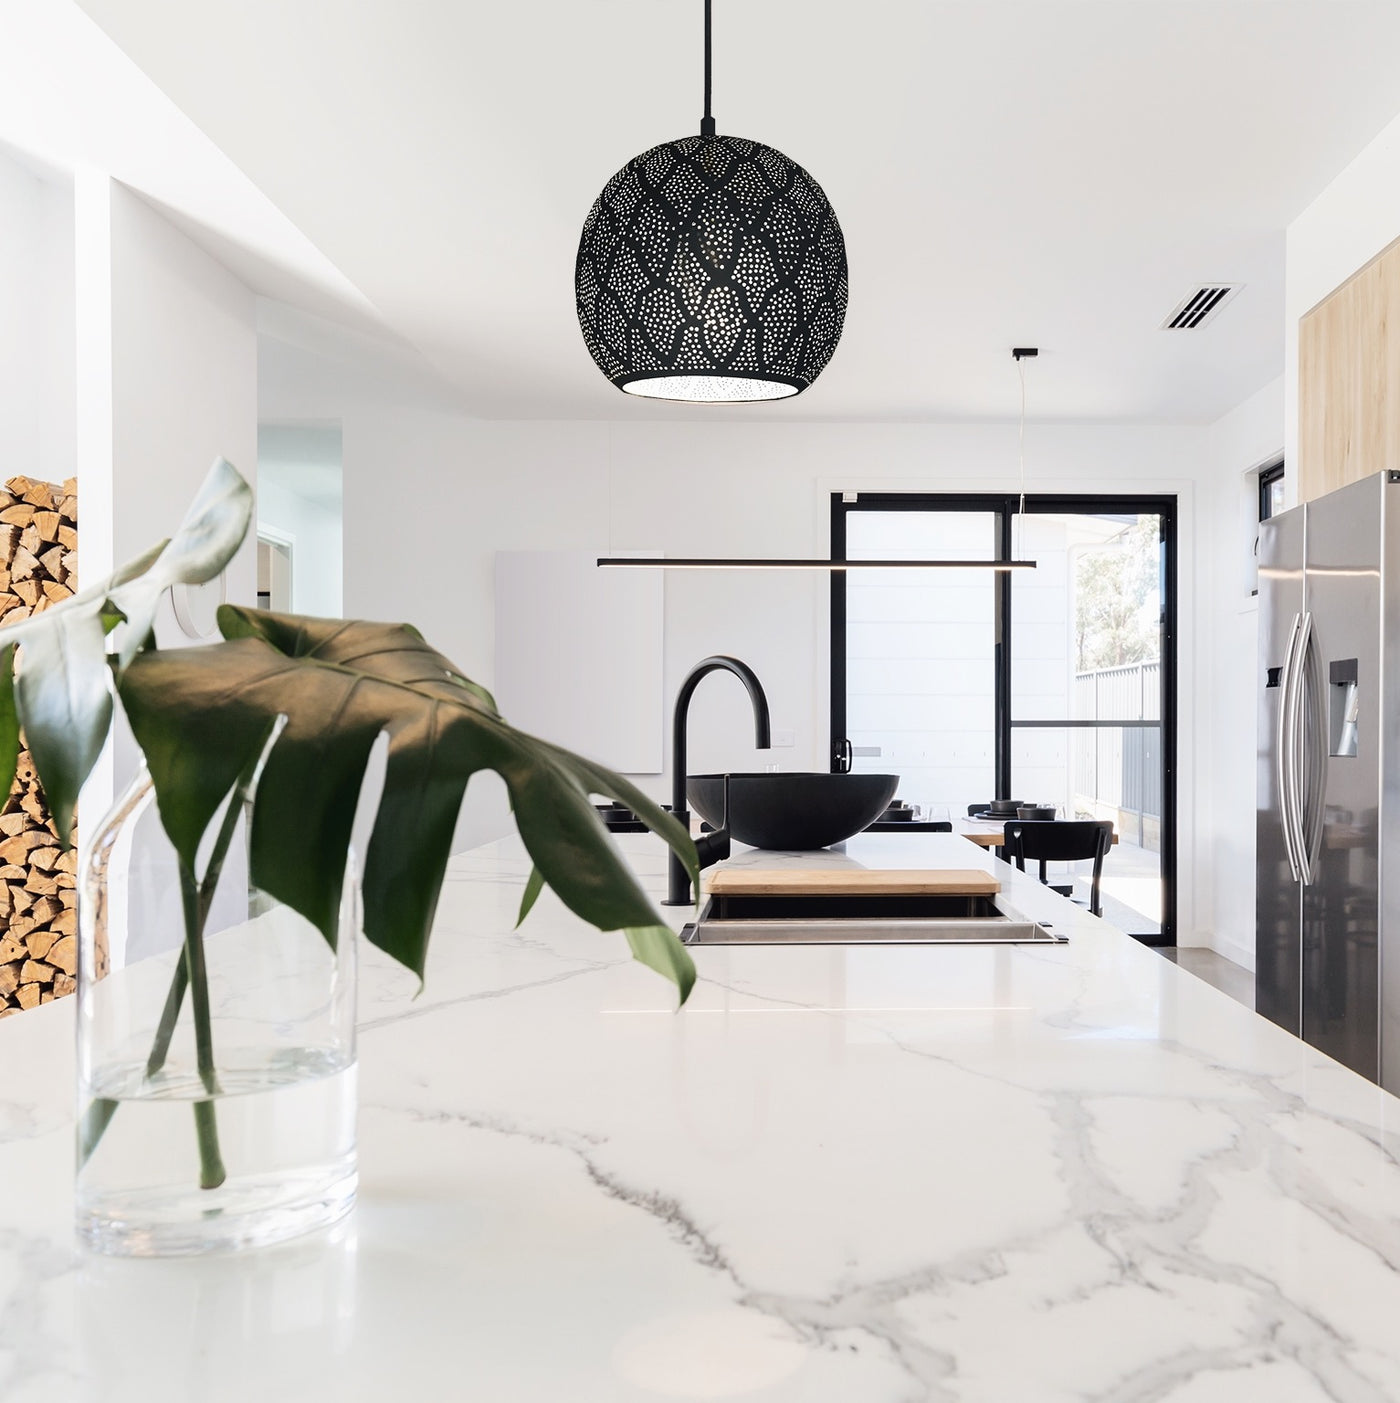 Modern kitchen with a rounded metal pendant light